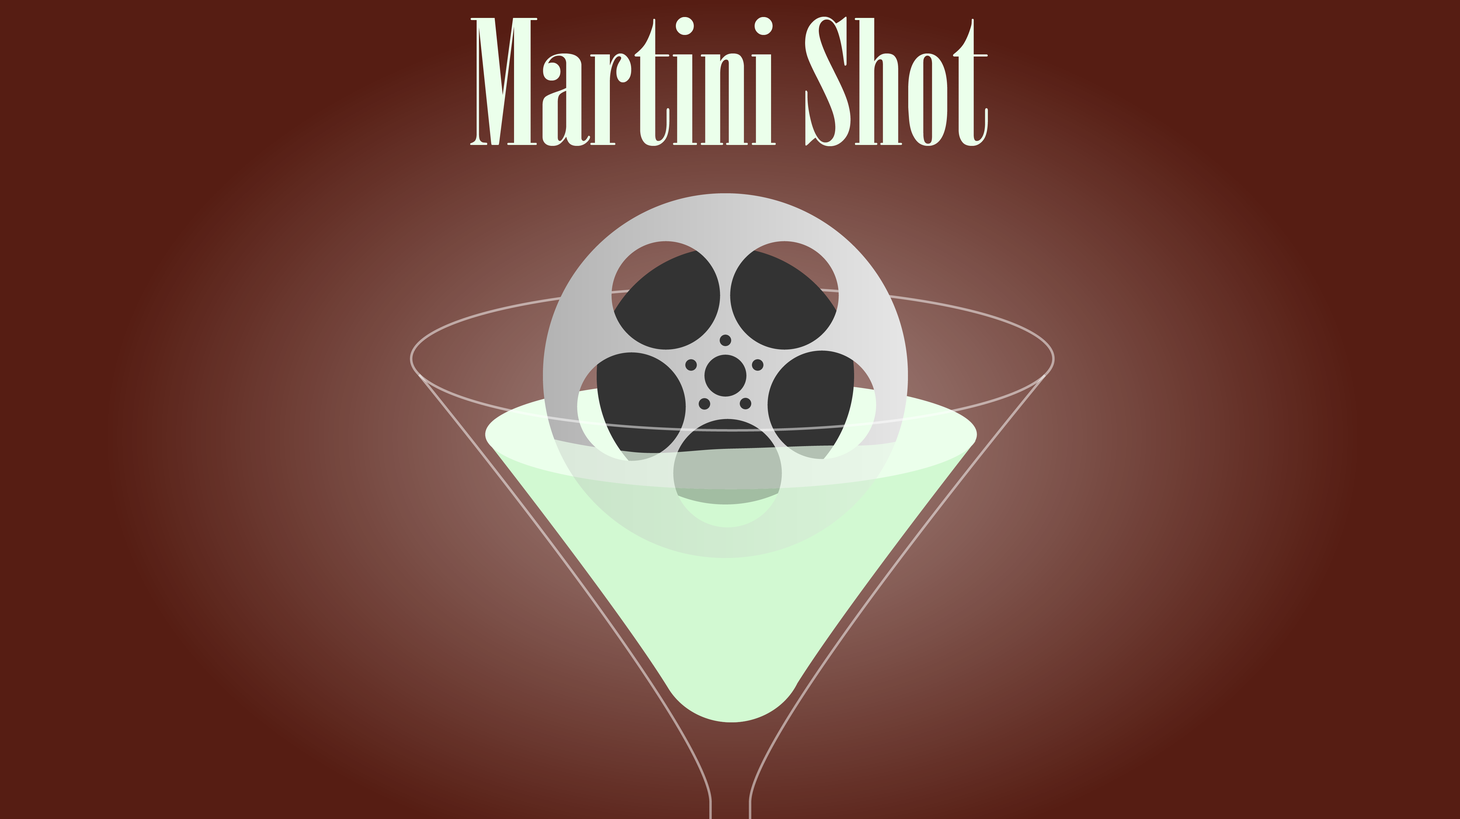 This is Rob Long and on today's Martini Shot I talk about serial killers and families living together and all of the ways writers have of making the job a little easier and the viewer a little less inclined to grab the remote.